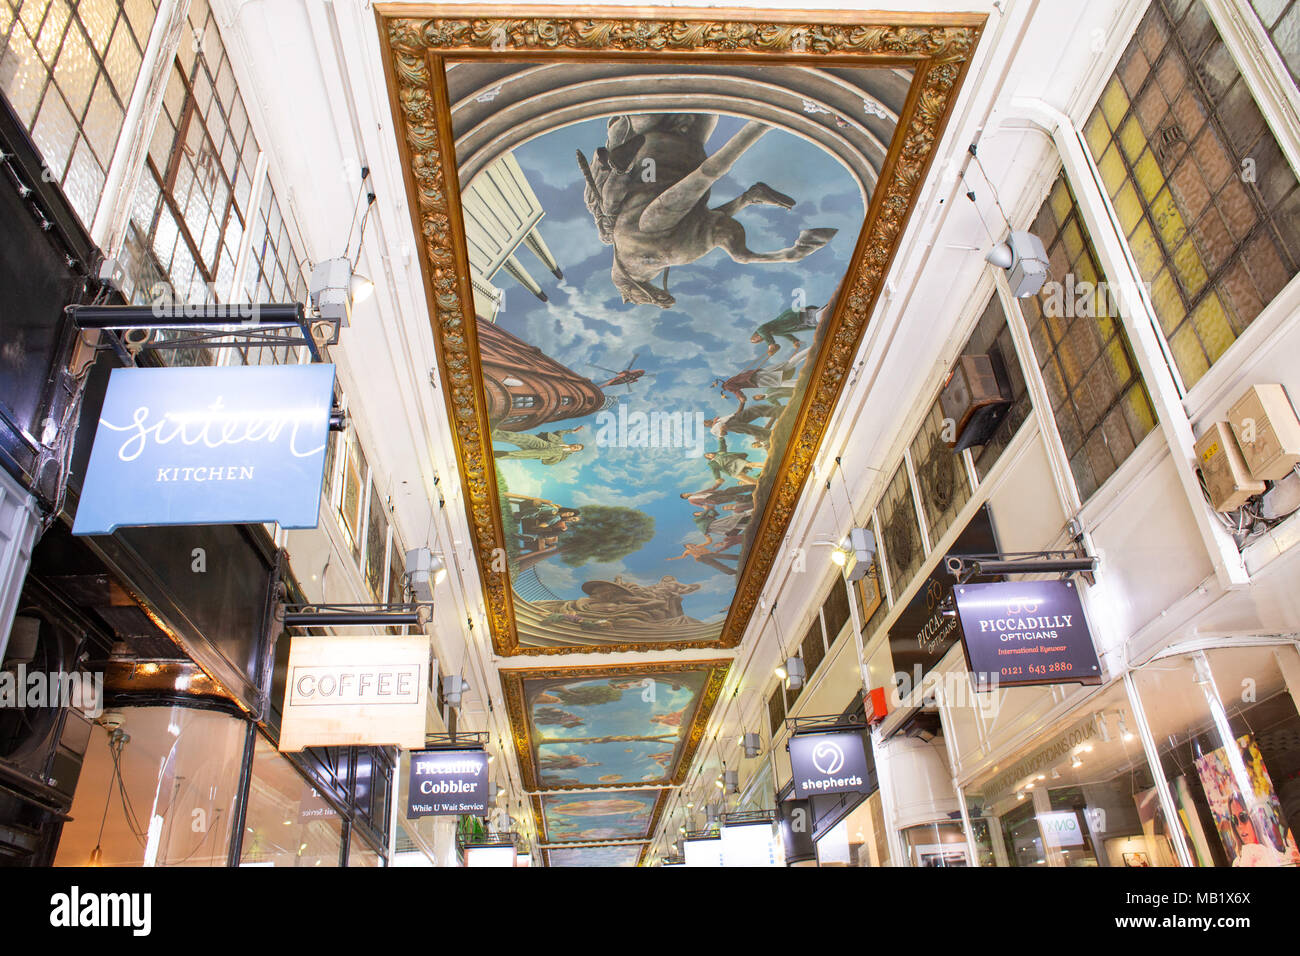 Painted murals by artist Paul Maxfield in Piccadilly arcade ceiling, New Street, Birmingham, UK - Stock Image